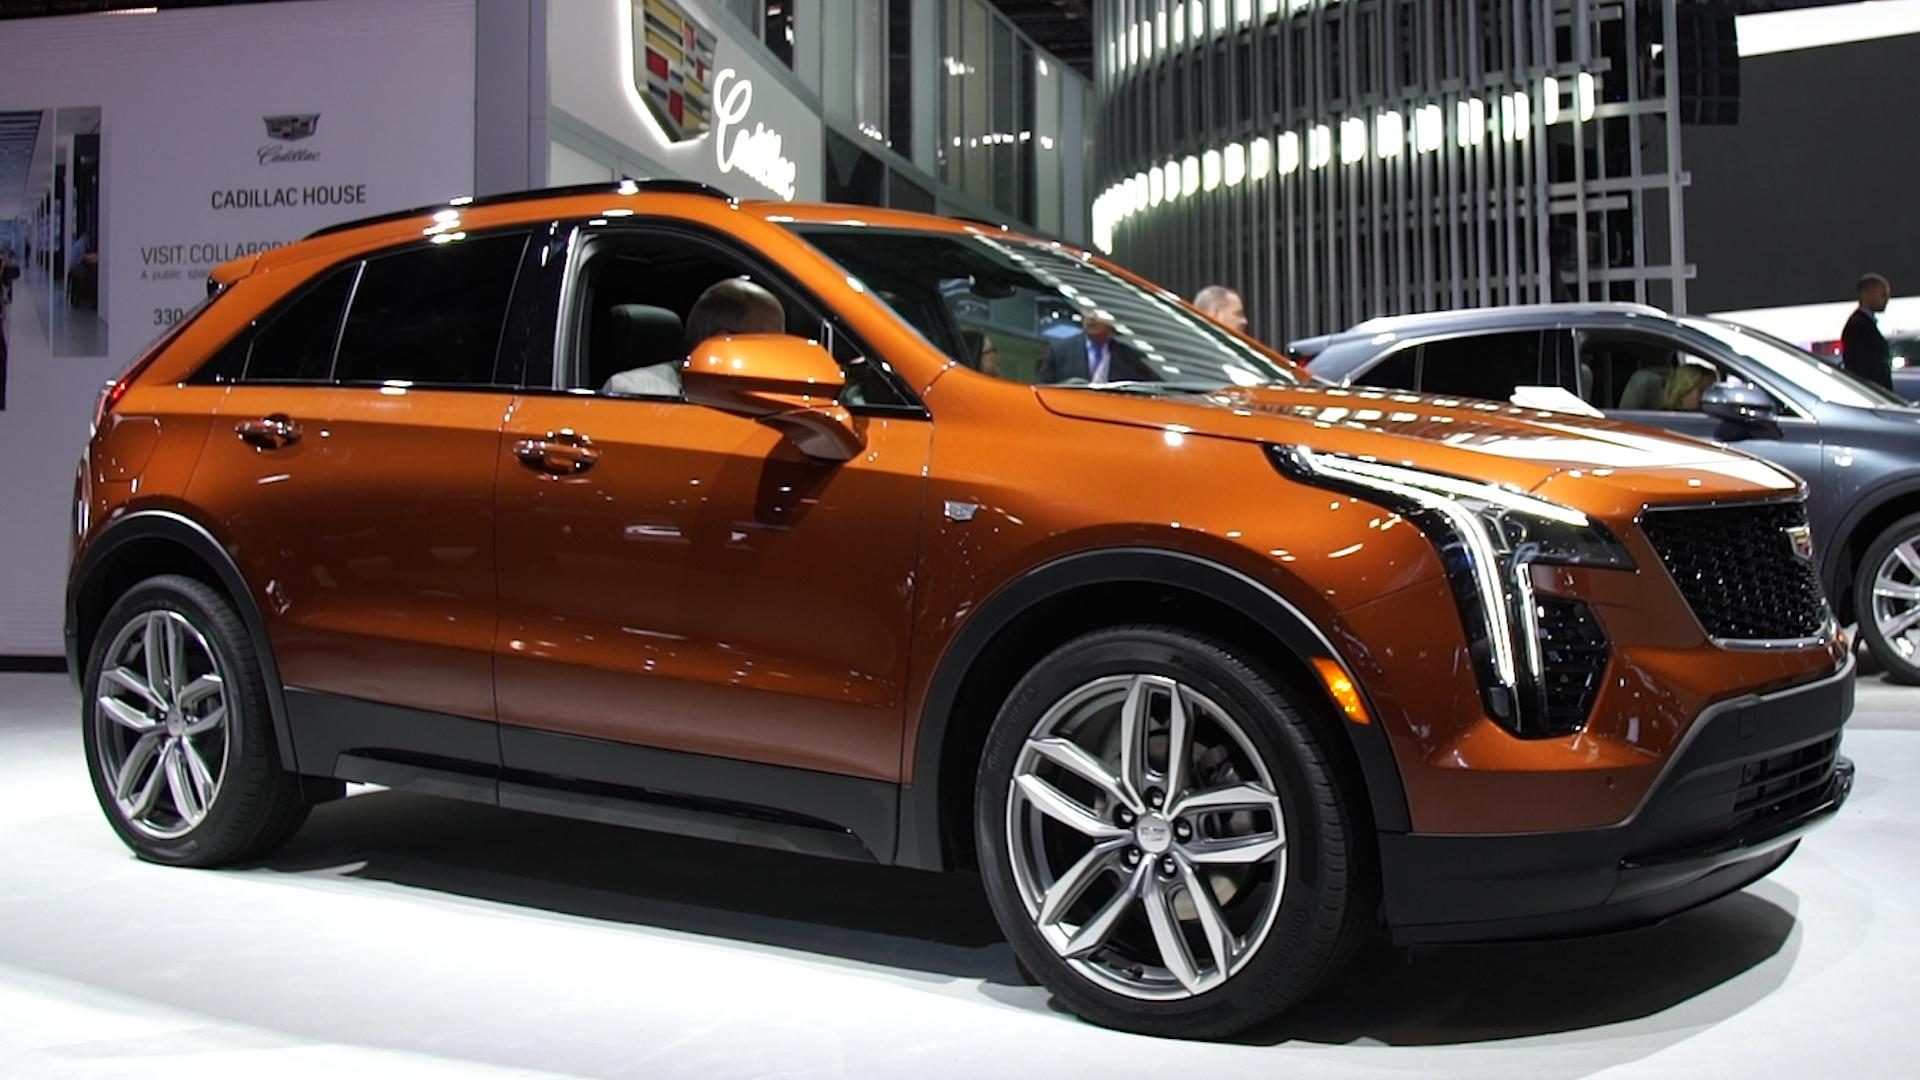 Cadillac XT4 SUV Preview - Consumer Reports